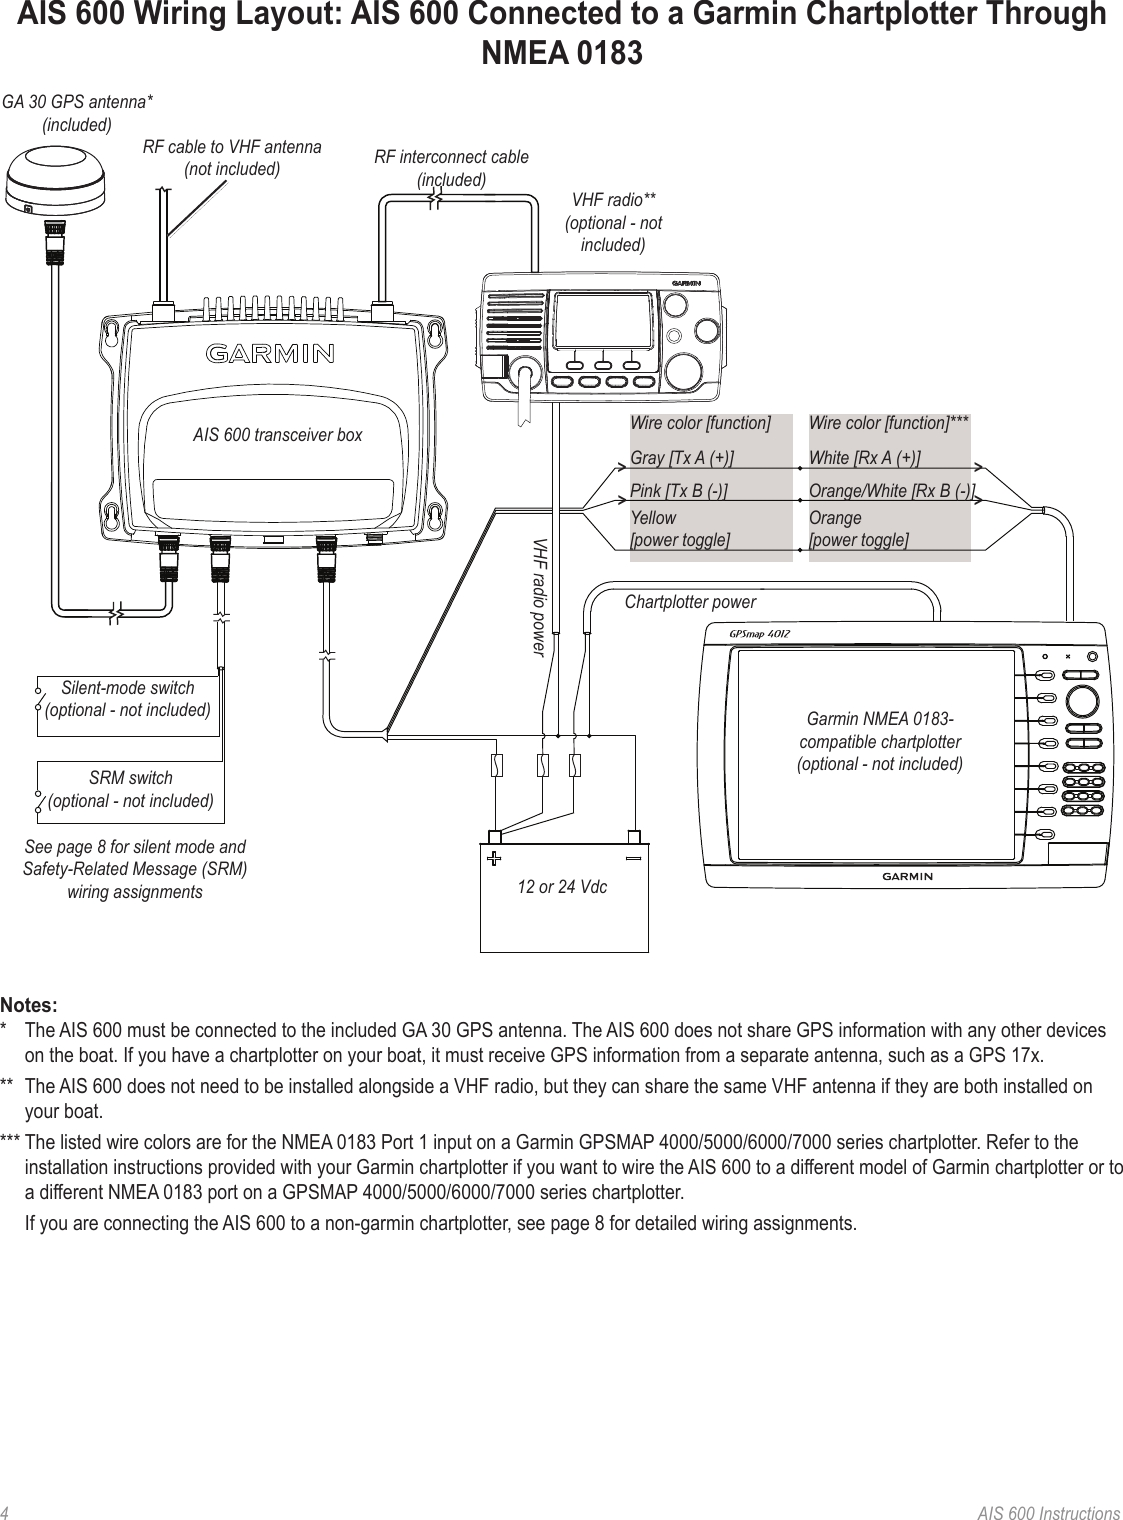 garmin fuel wiring diagram free picture schematic nmea 2000 wiring diagram | free wiring diagram